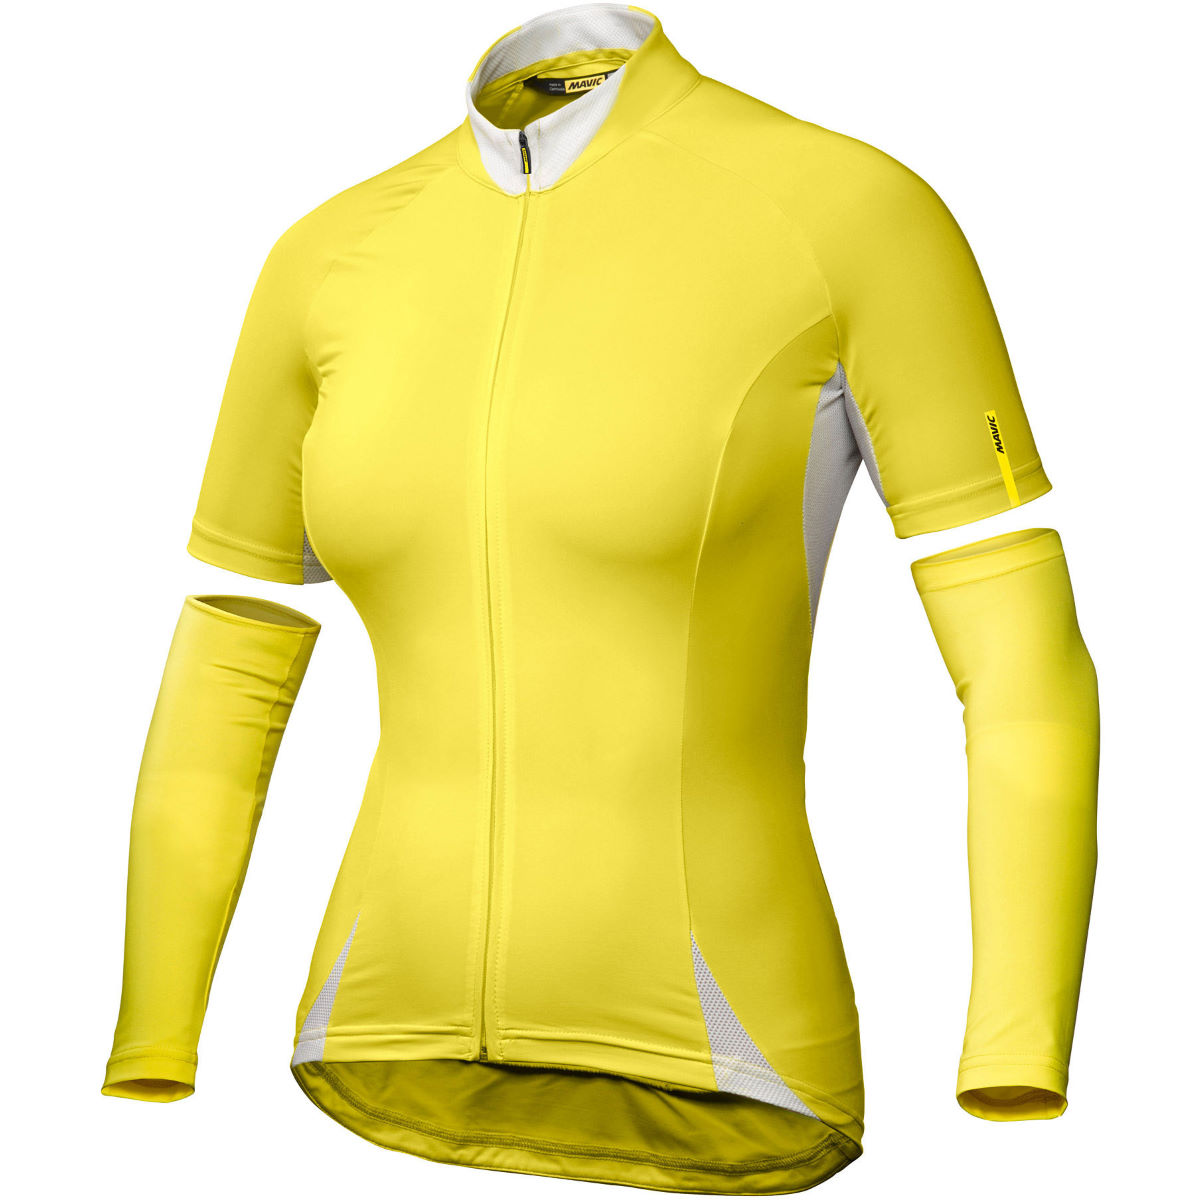 Maillot Femme Mavic Aksium (manches courtes) - S Jaune Maillots